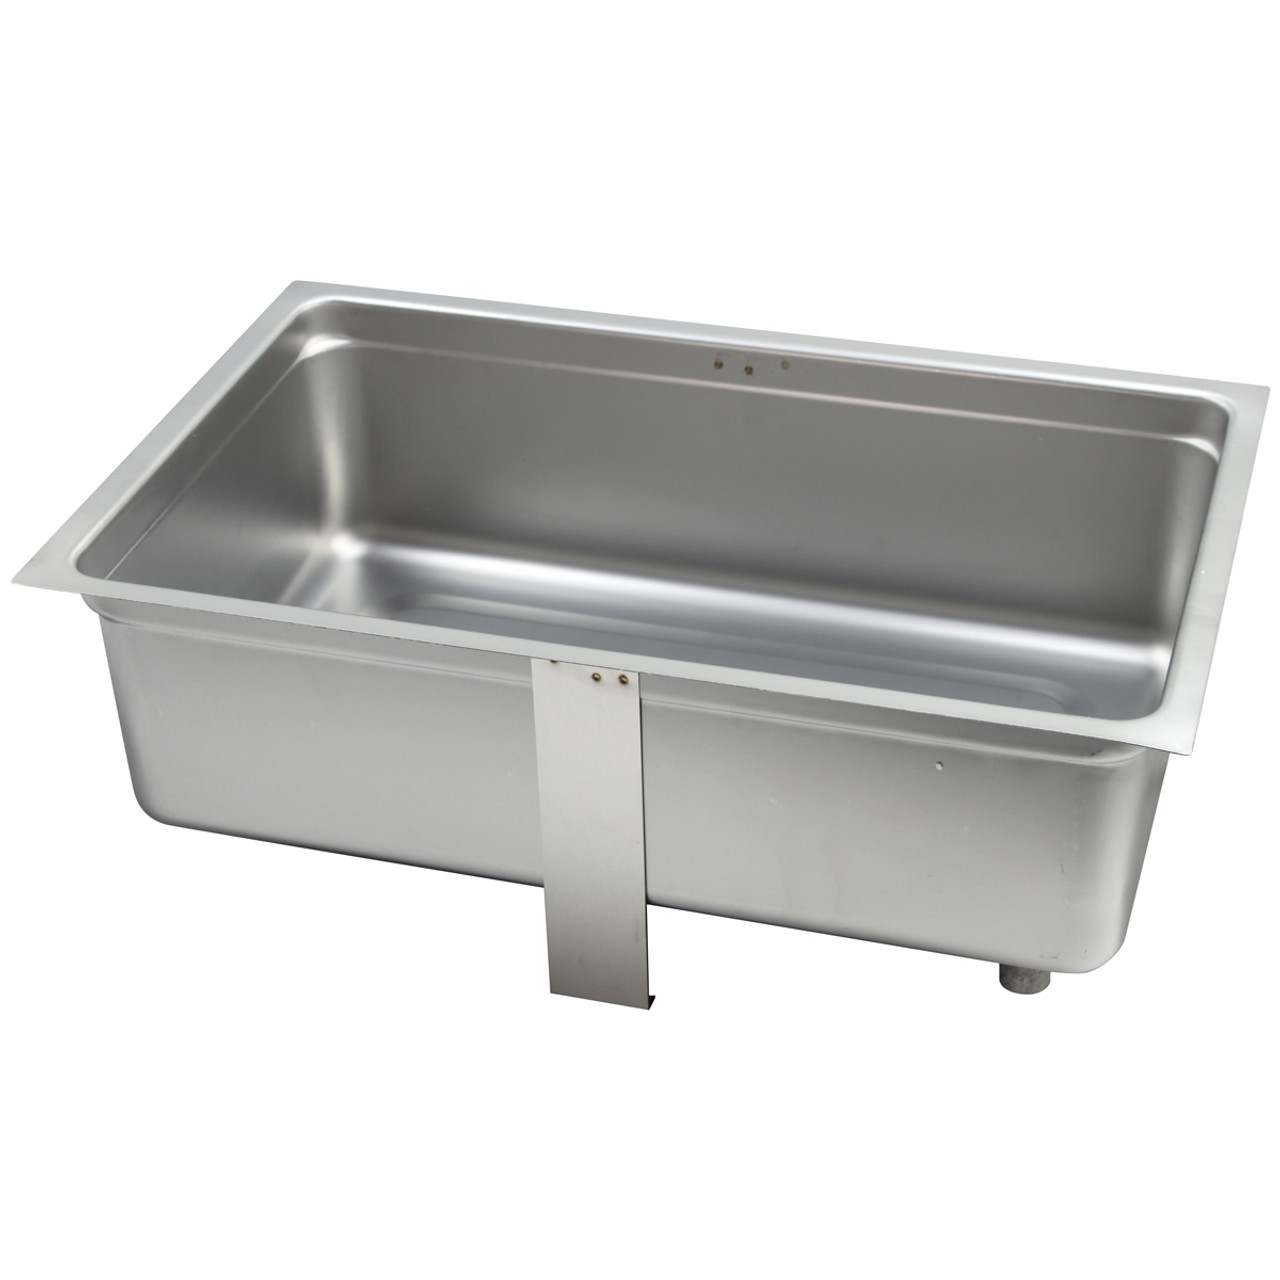 DELFIELD 0160014-S PAN W/DRAIN